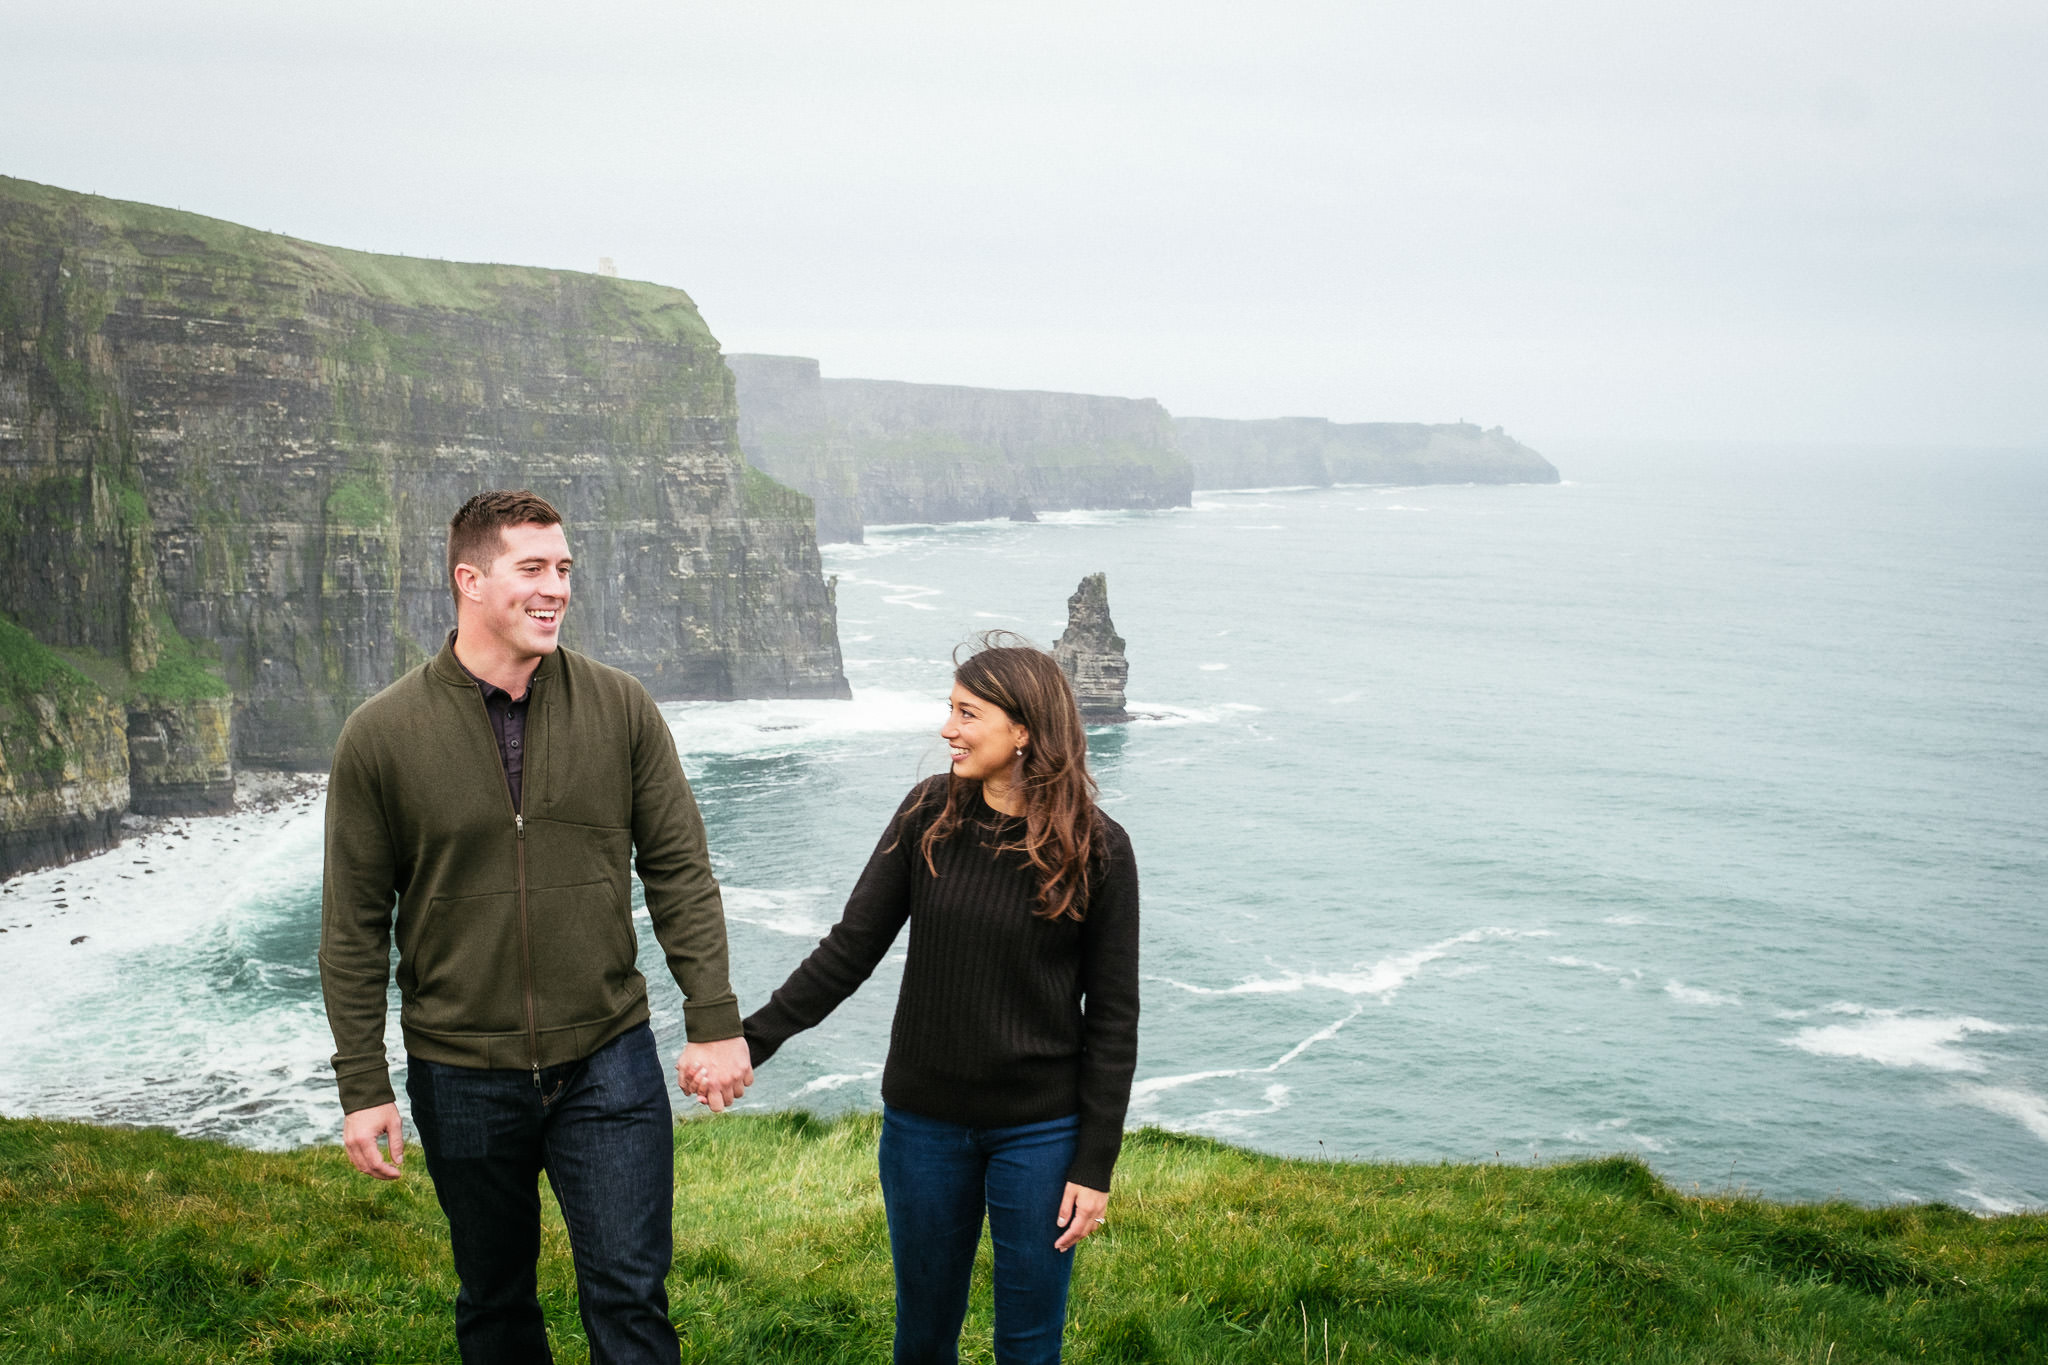 engaged couple holding hands during their engagement shoot at the Cliffs of Moher